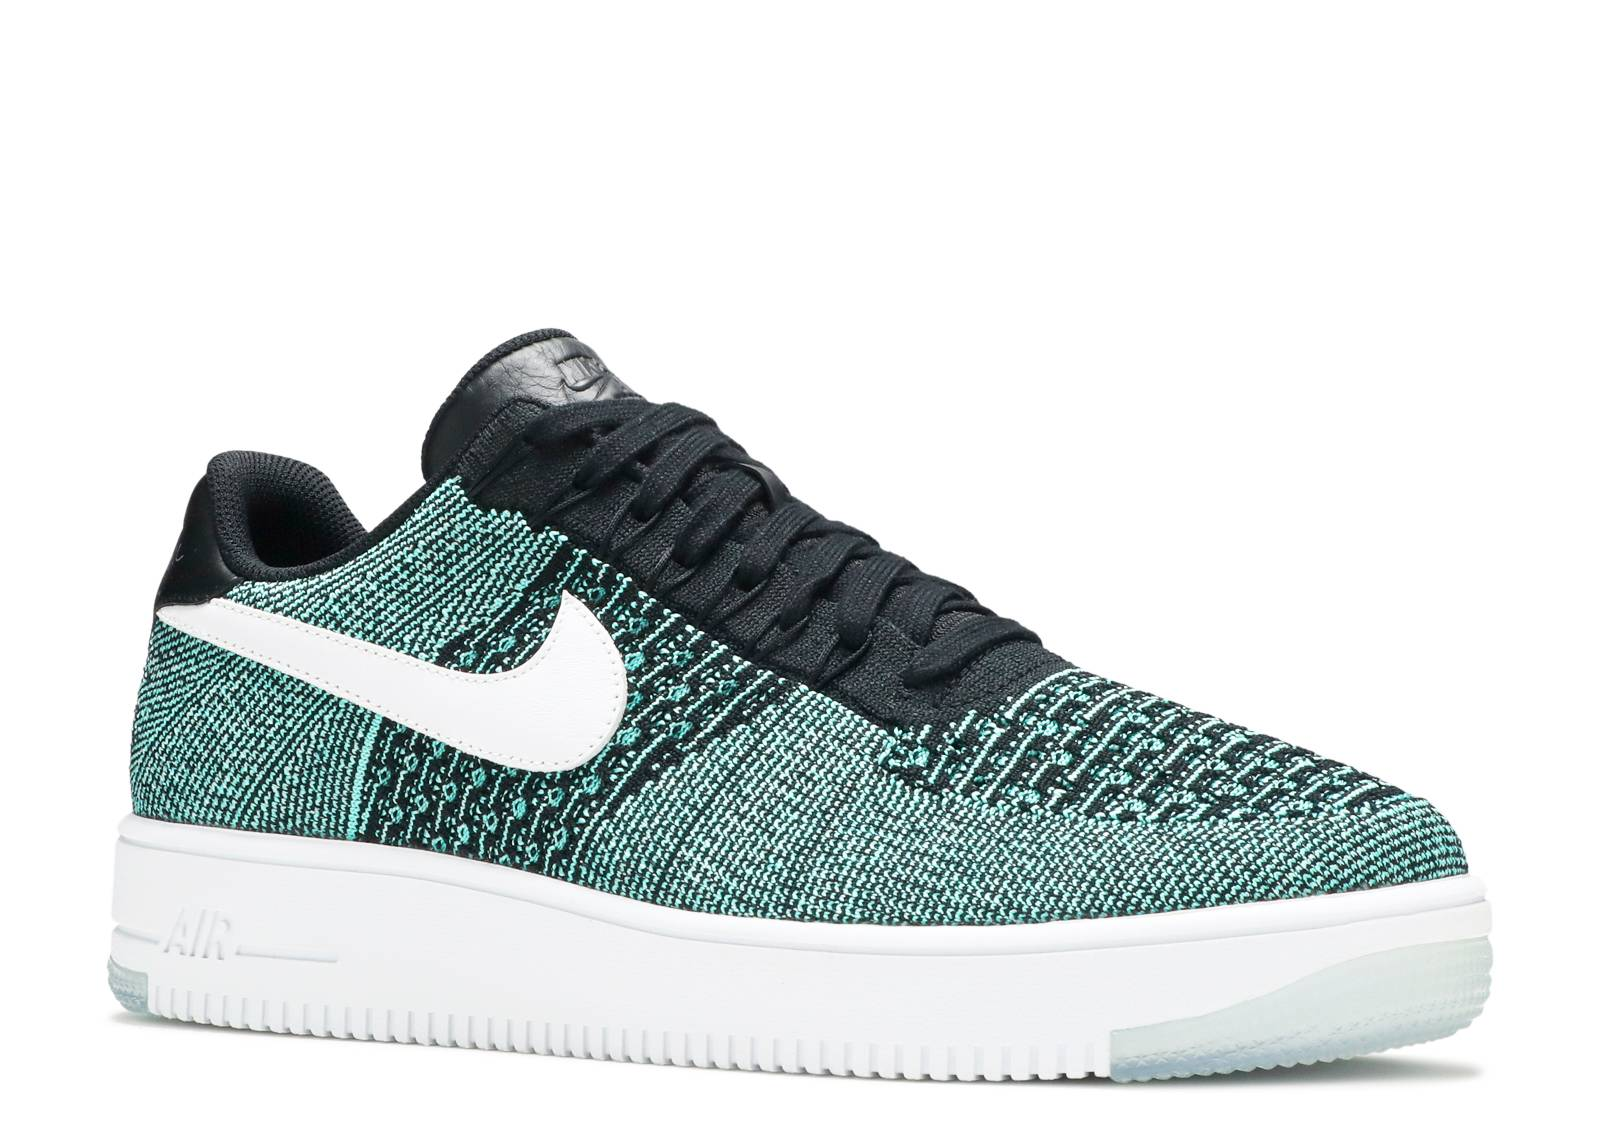 low priced ca0d2 959c0 nike. air force 1 ultra flyknit low